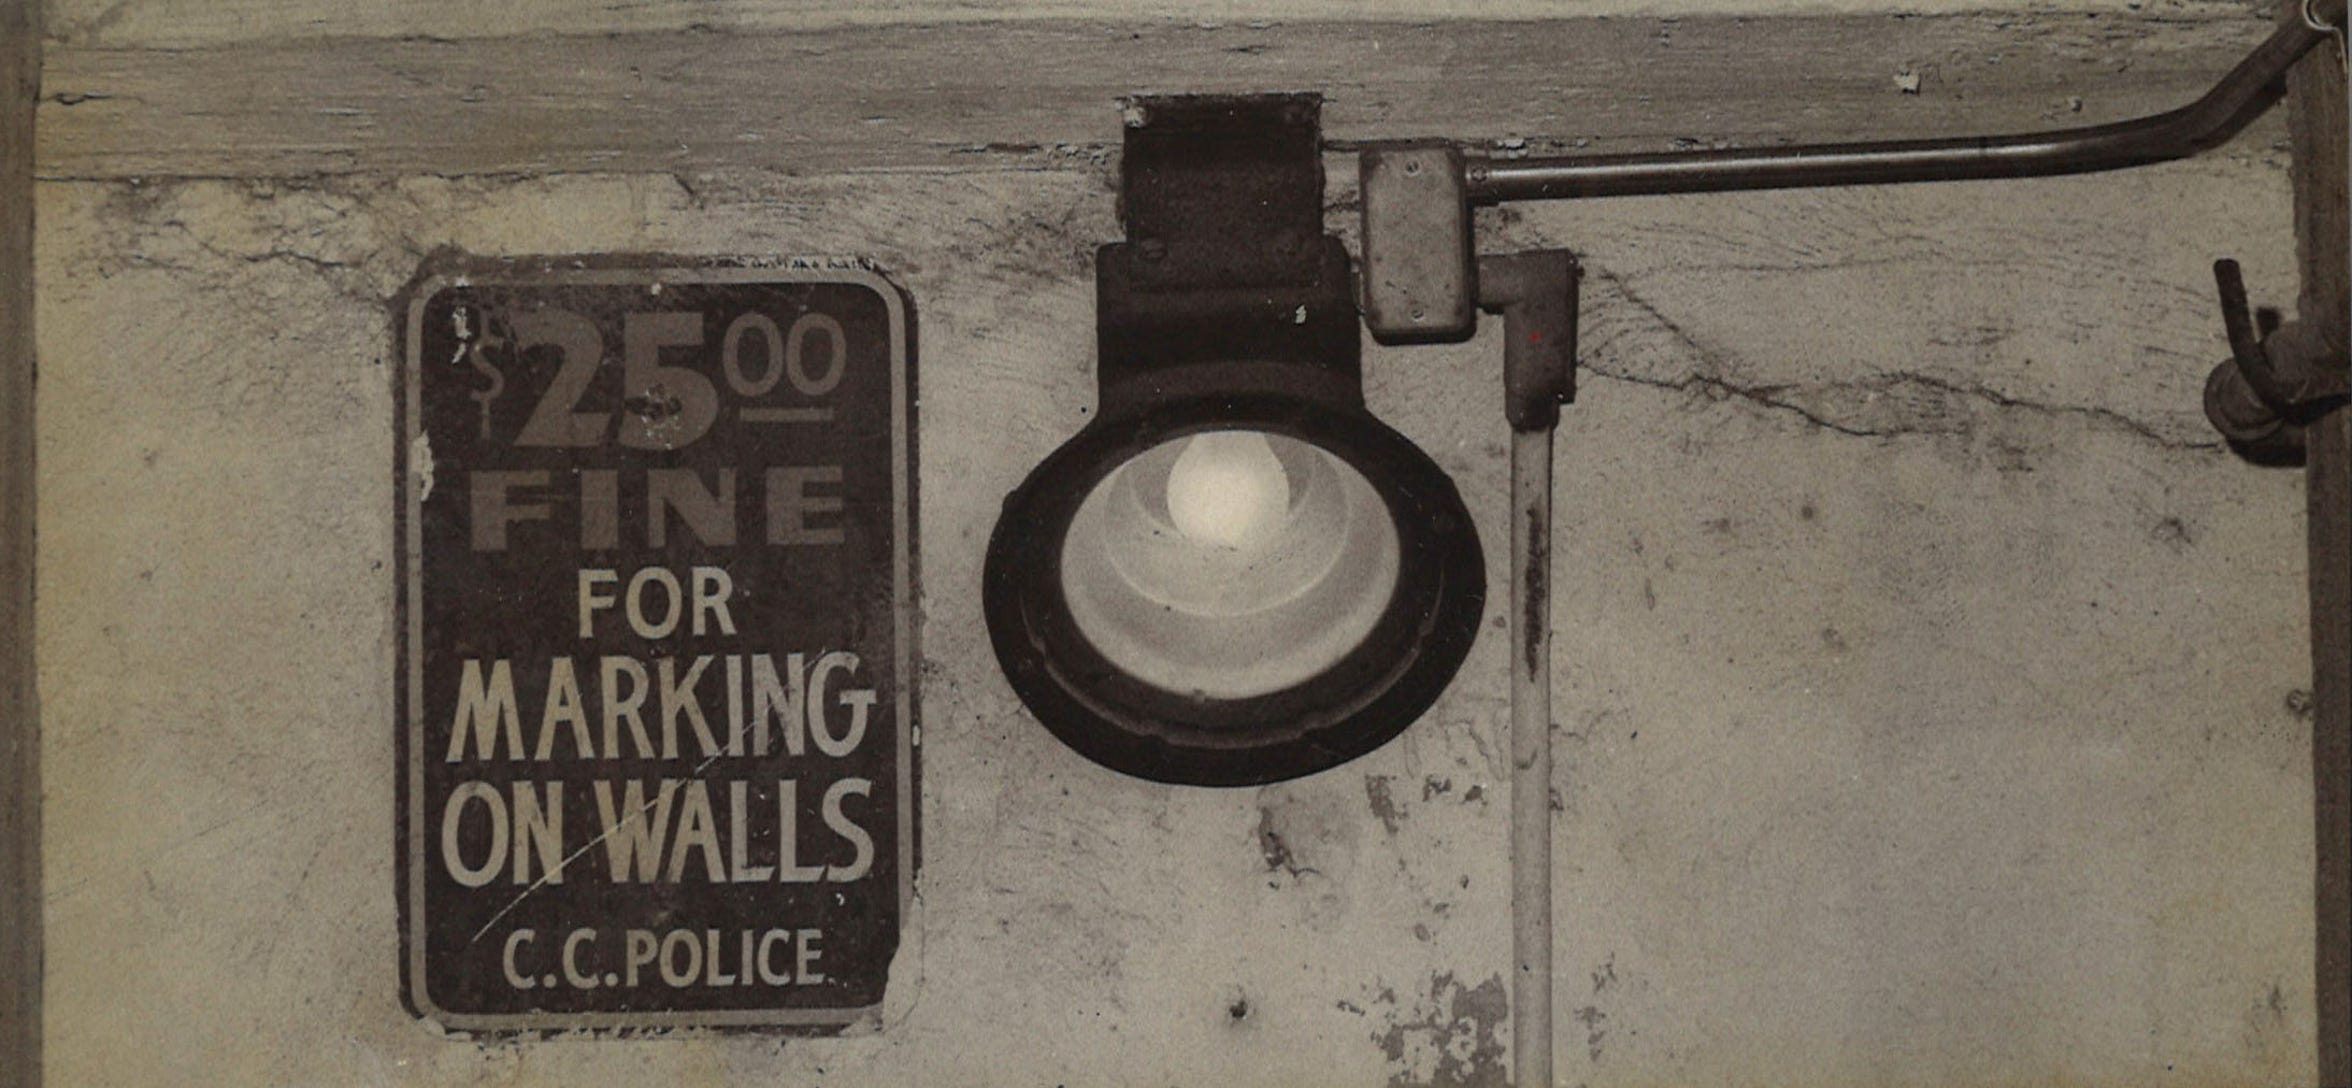 A sign inside the bluff tunnel between uptown and downtown Corpus Christi from January 1975.